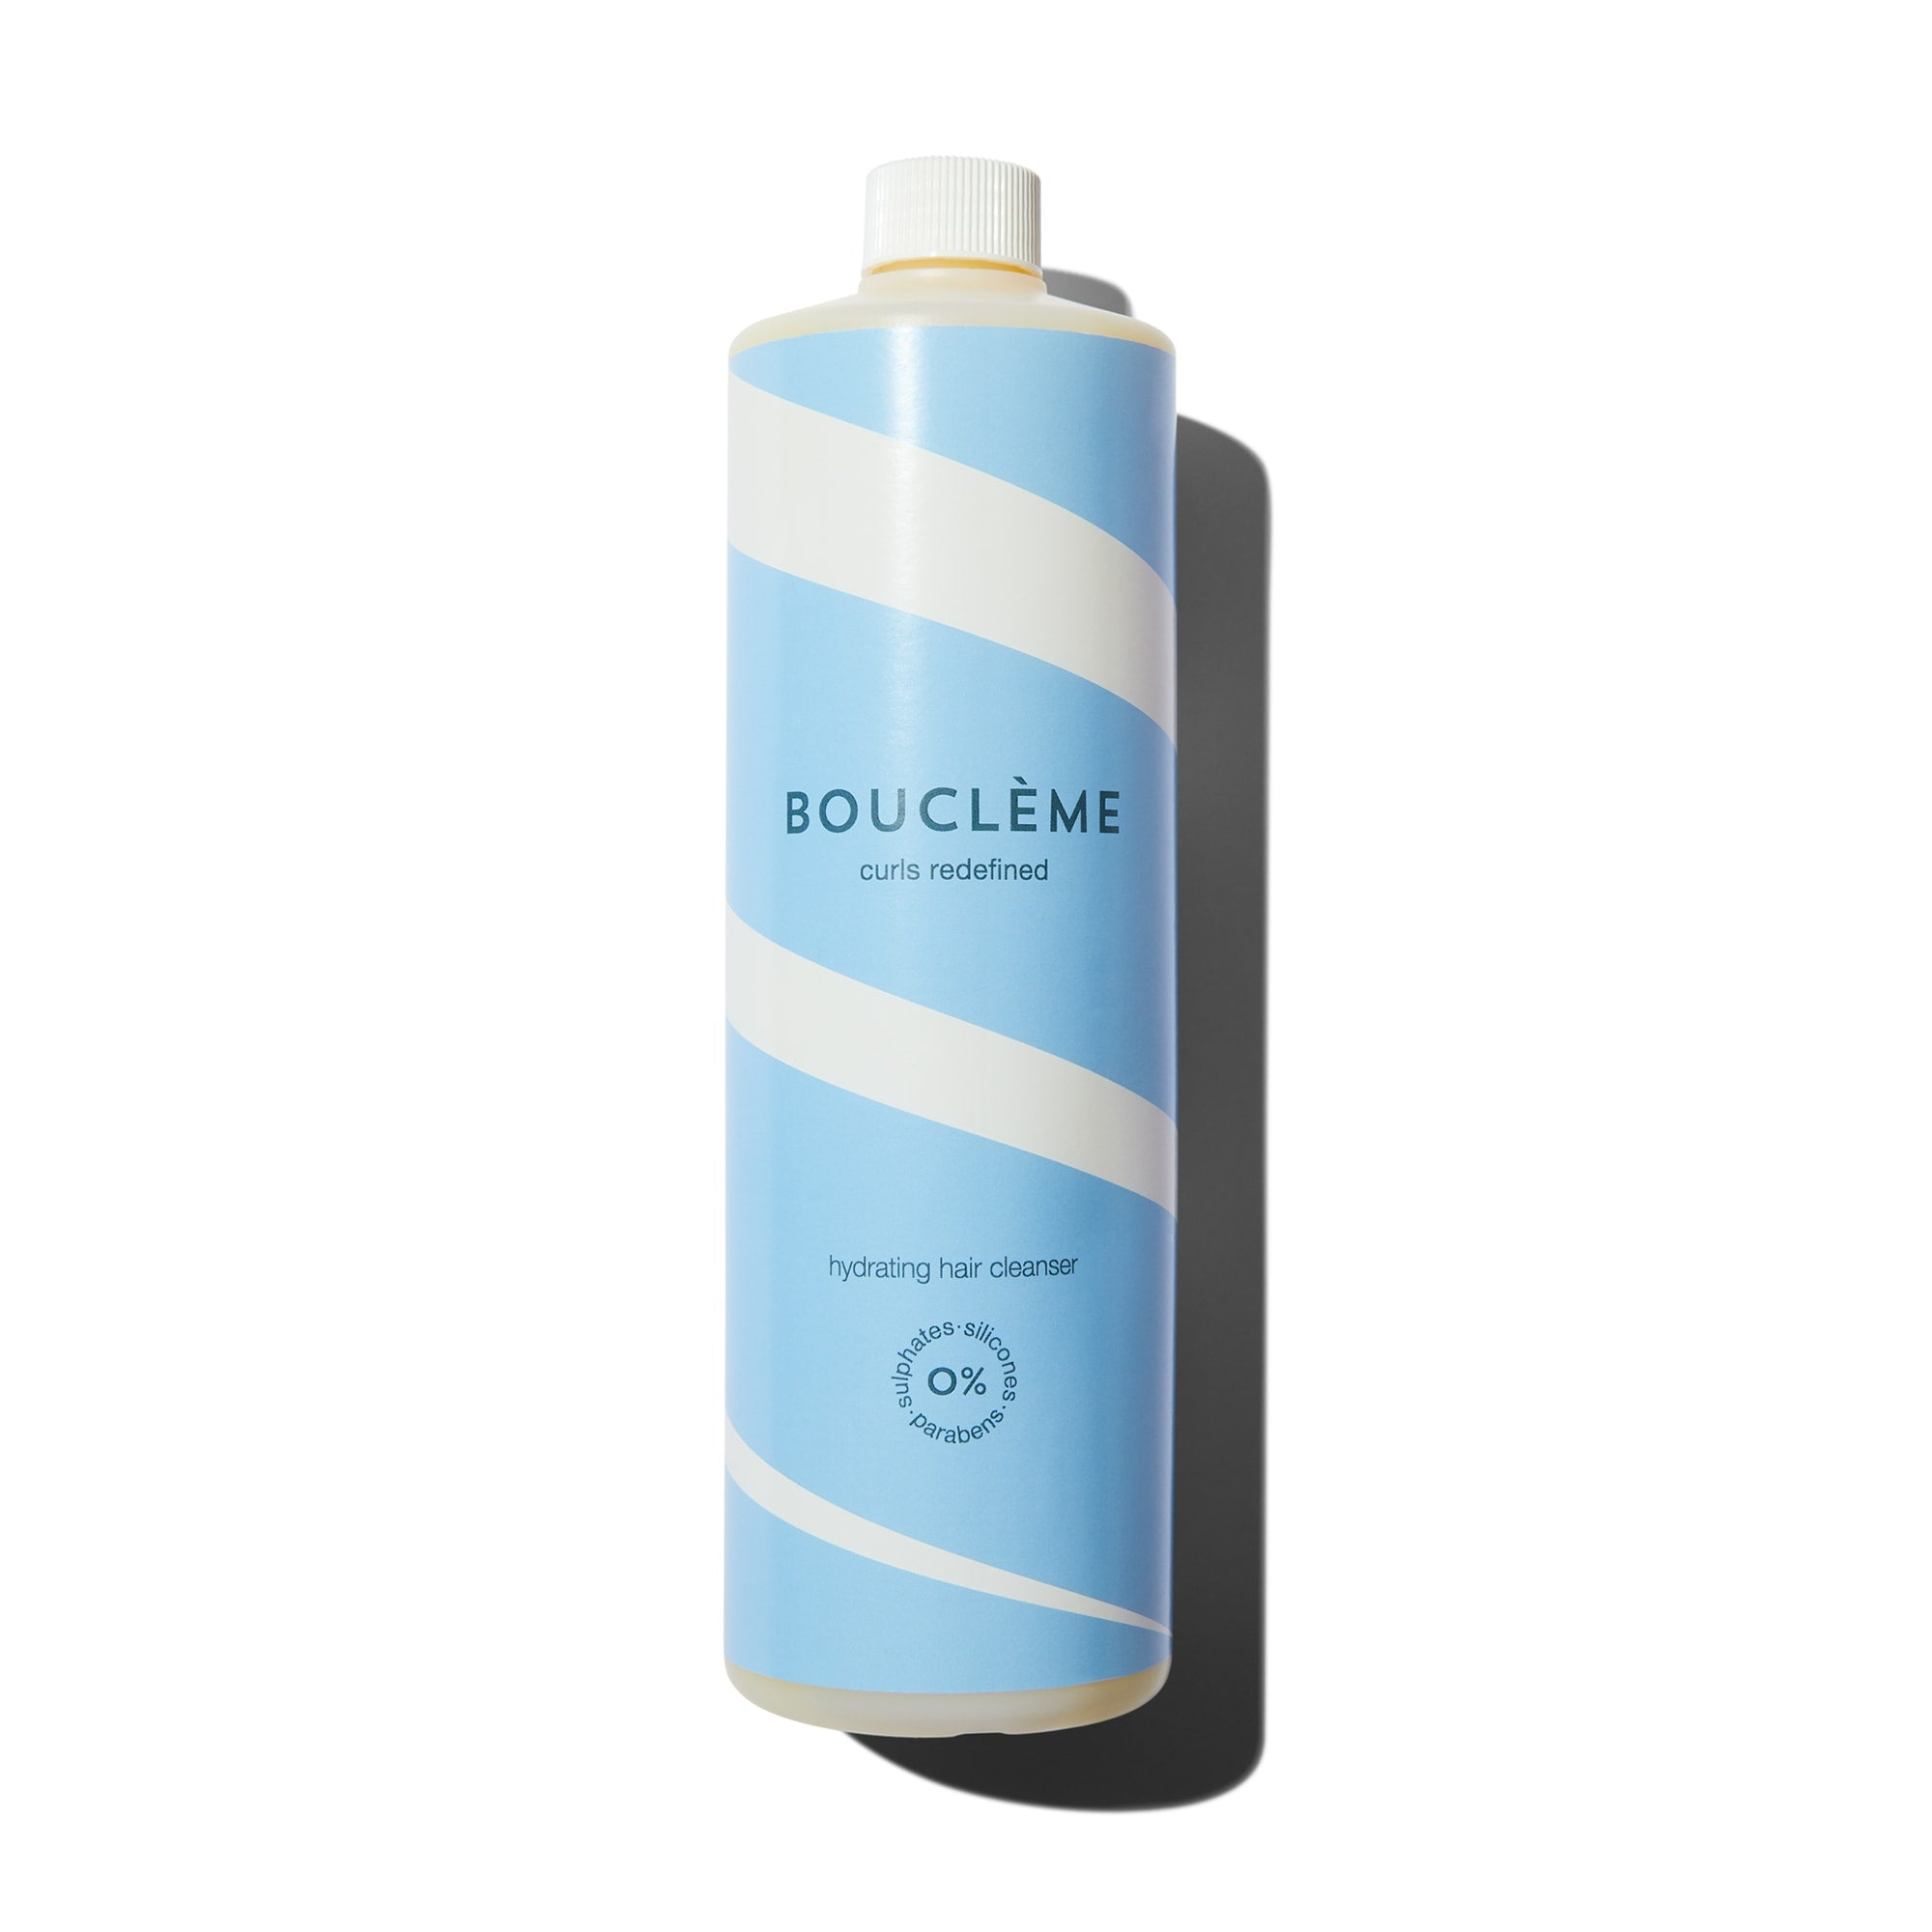 Hydrating Hair Cleanser